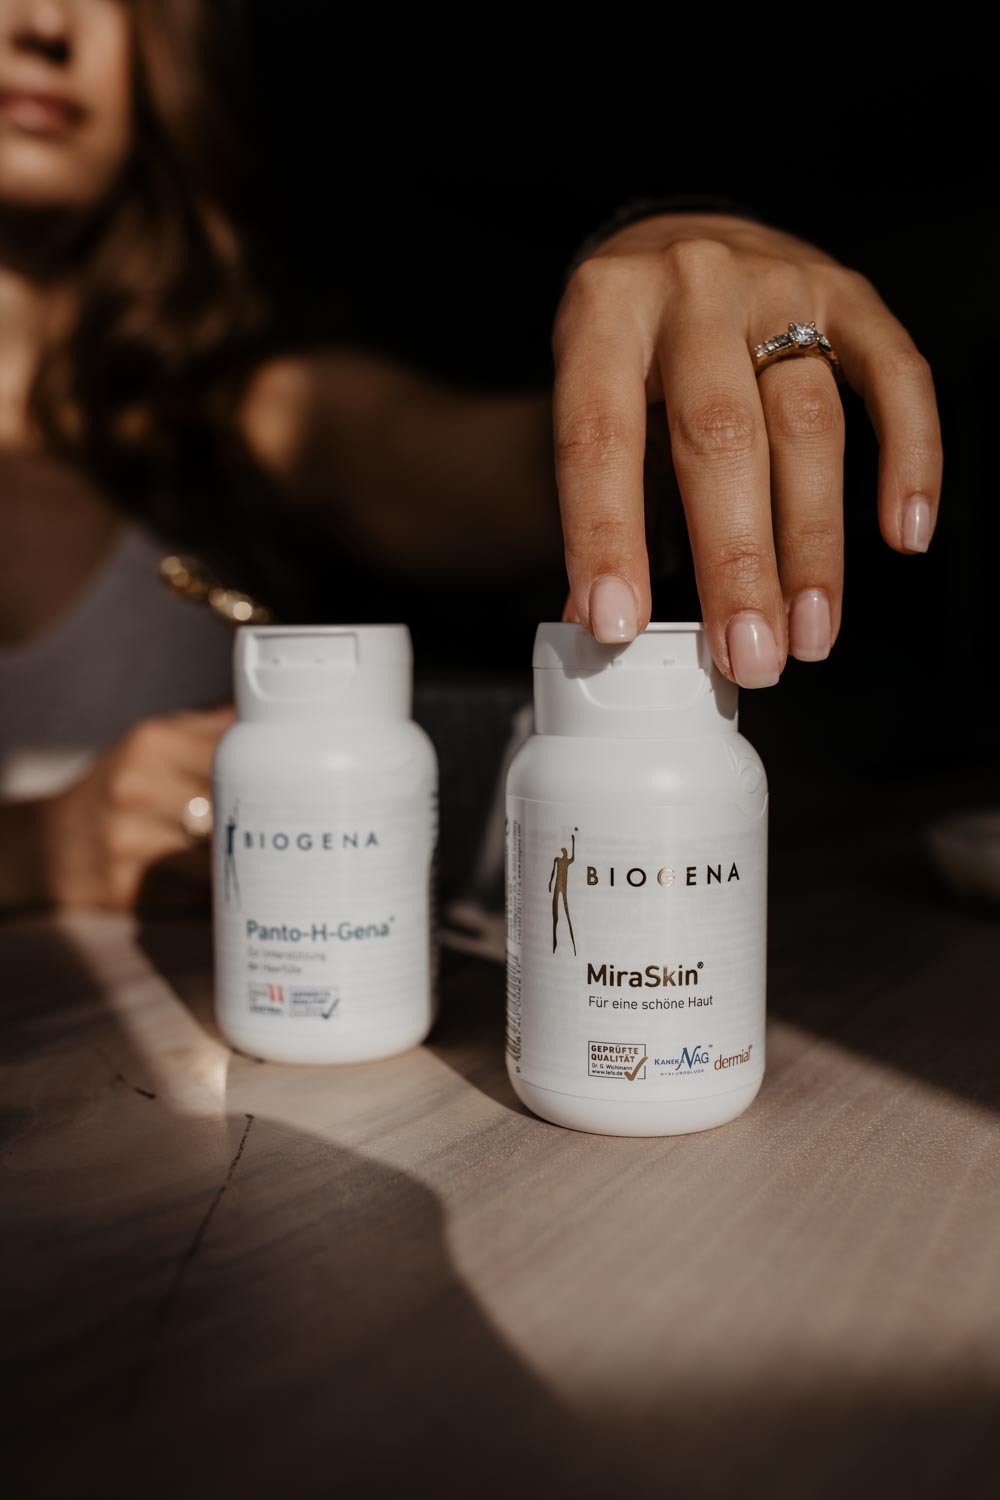 Beauty From The Inside: Biogena Beauty Food Supplements I Swear On - You Rock My Life @ninawro